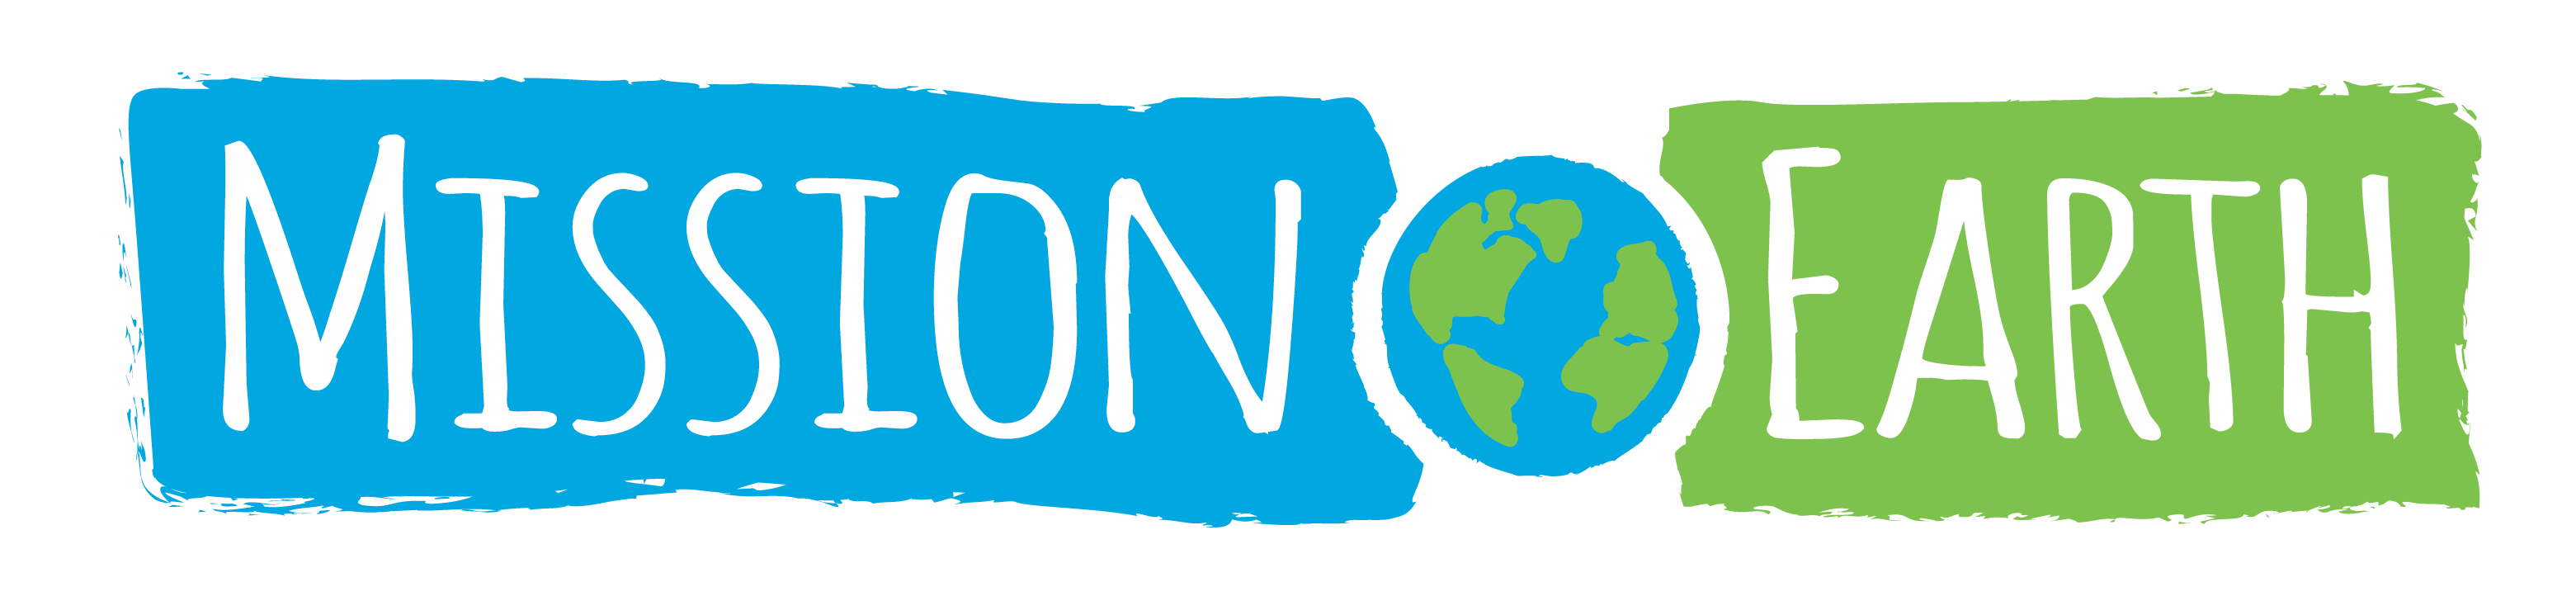 Vision clipart mision. Mission earth creation free